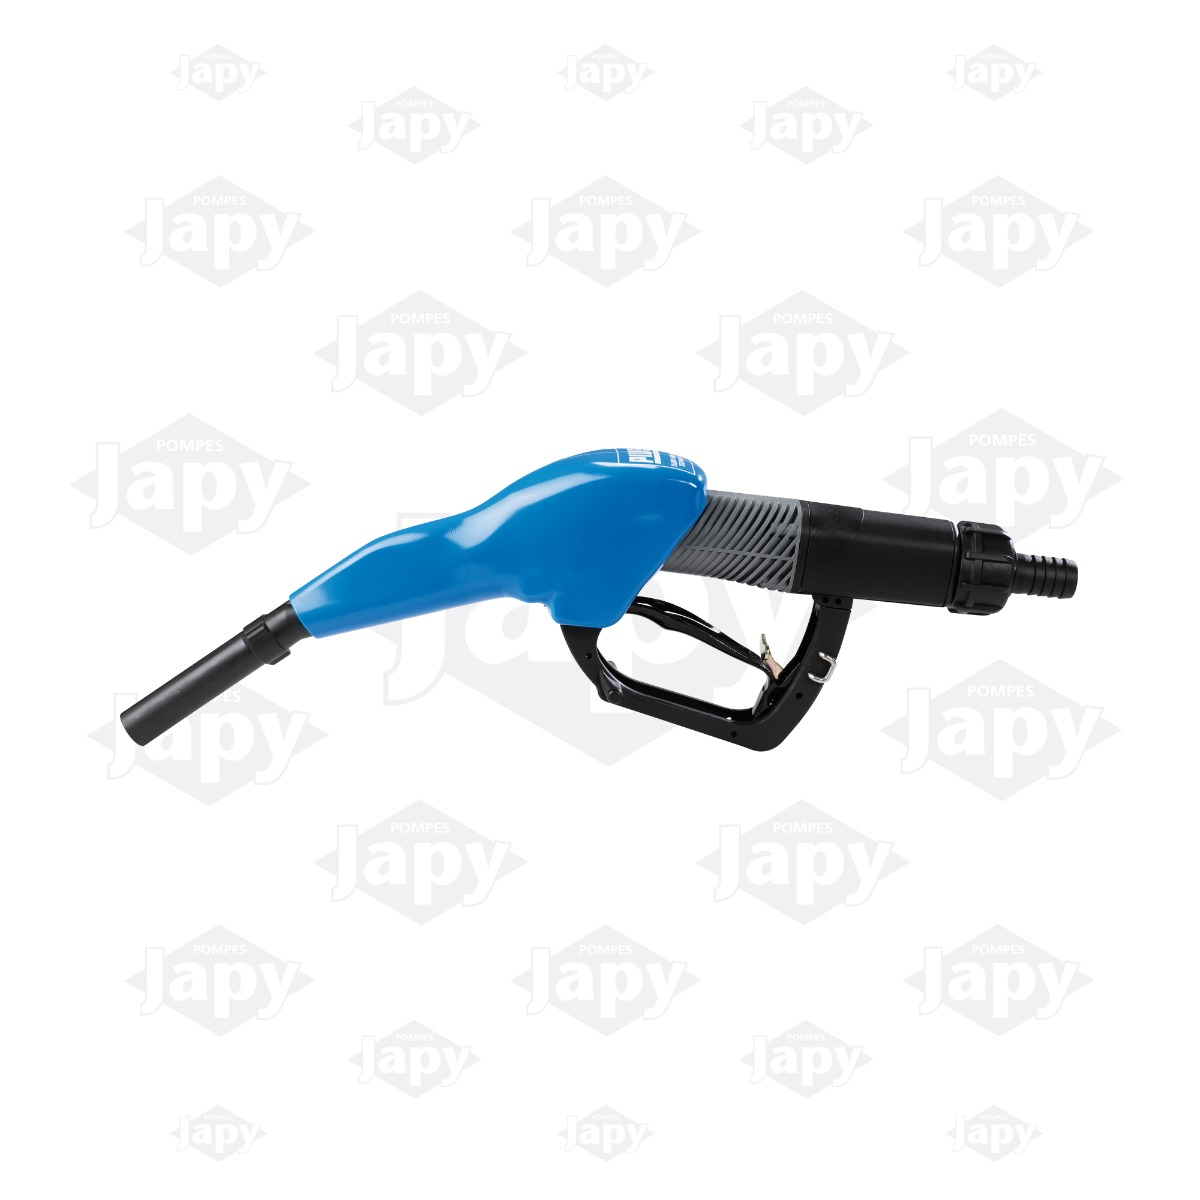 Special delivery gun – TOPW2-ADBLUE